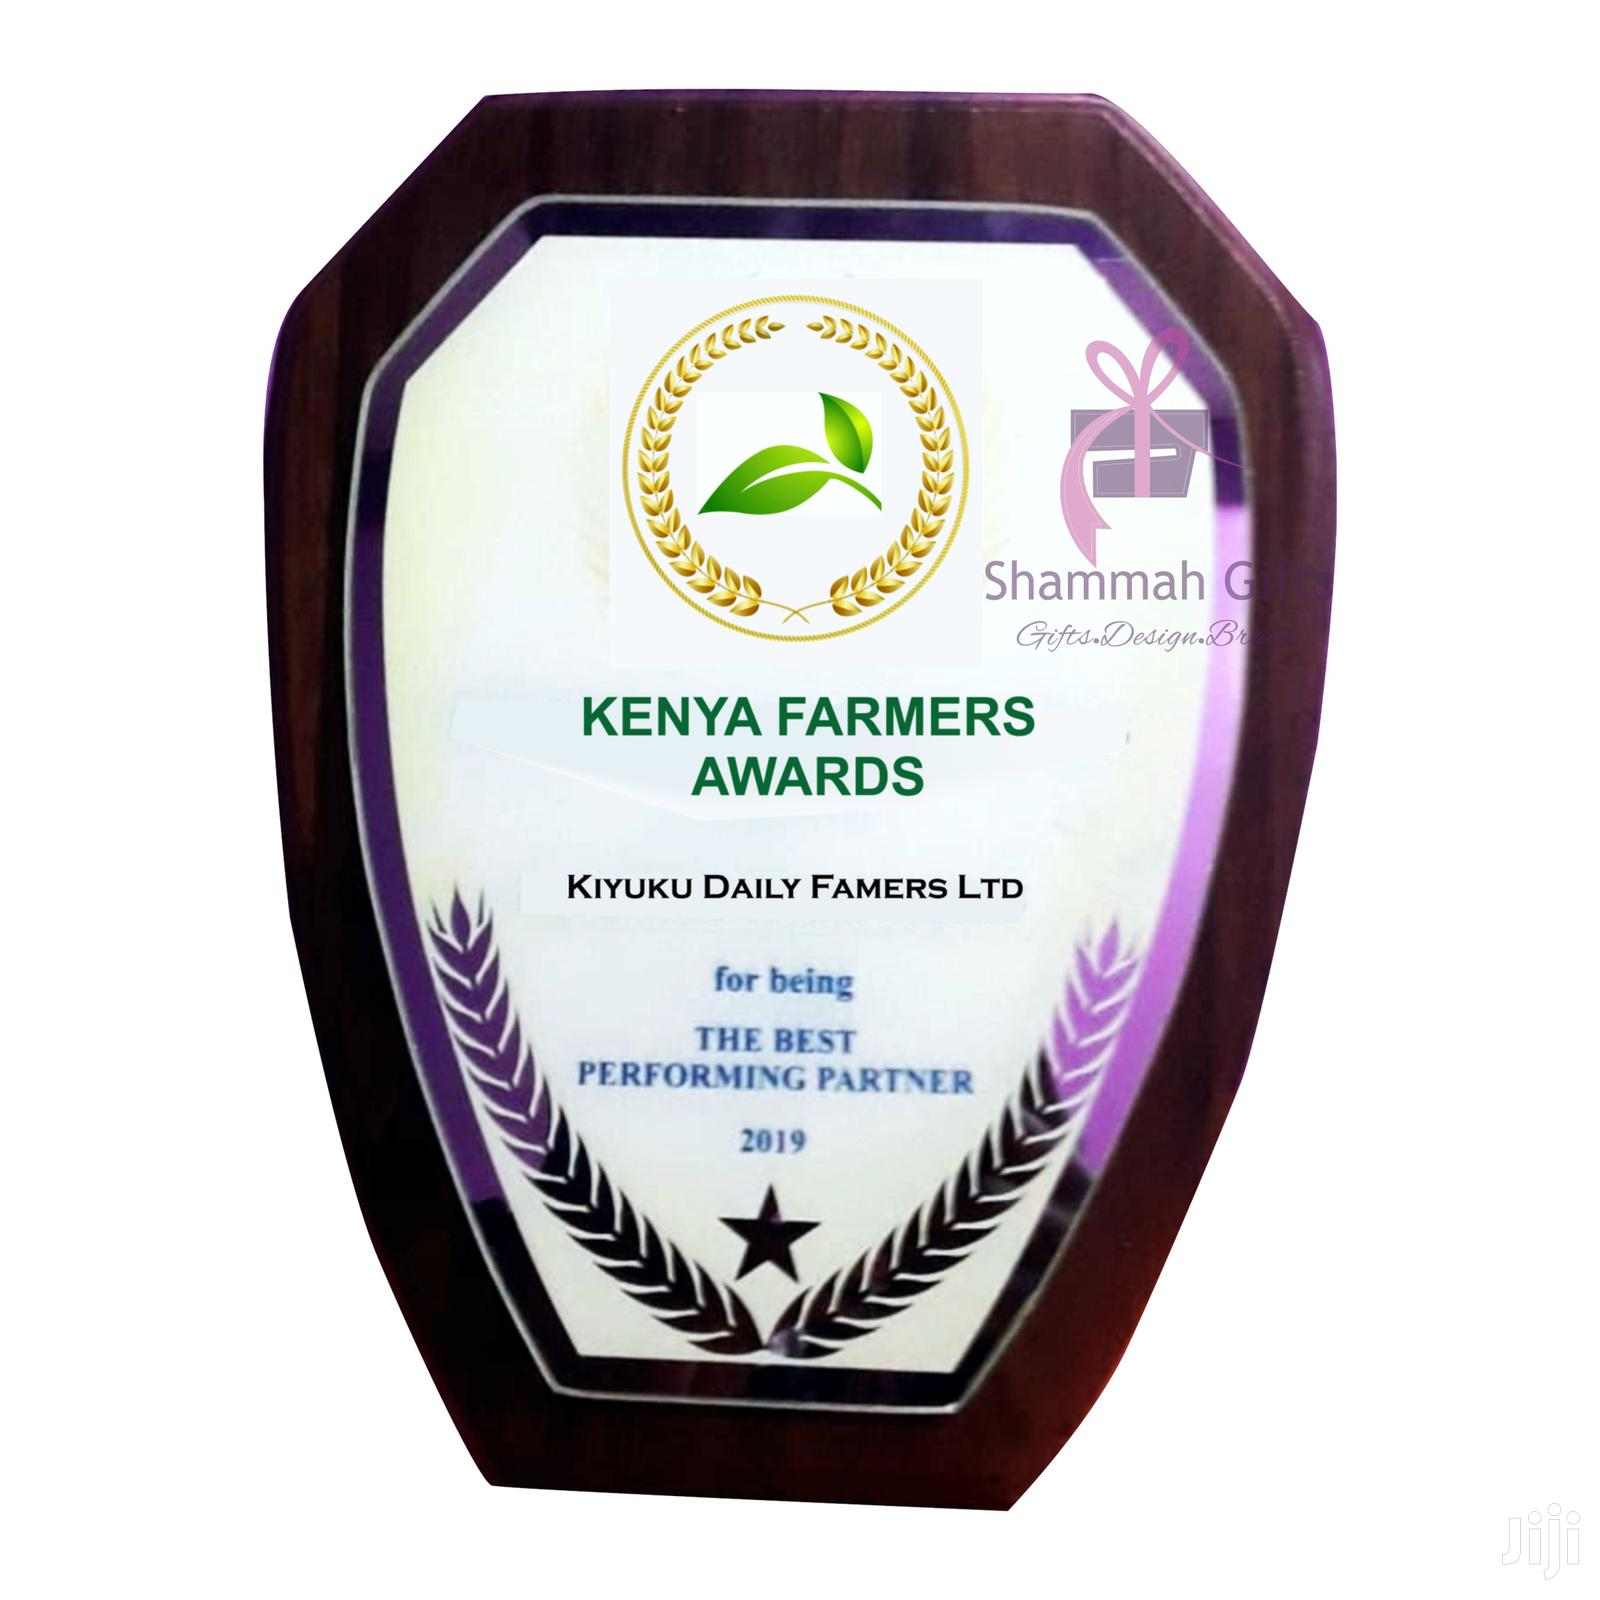 Quality Corporate Wooden Plaques Branded For Awarding Ceremonies. | Arts & Crafts for sale in Nairobi Central, Nairobi, Kenya